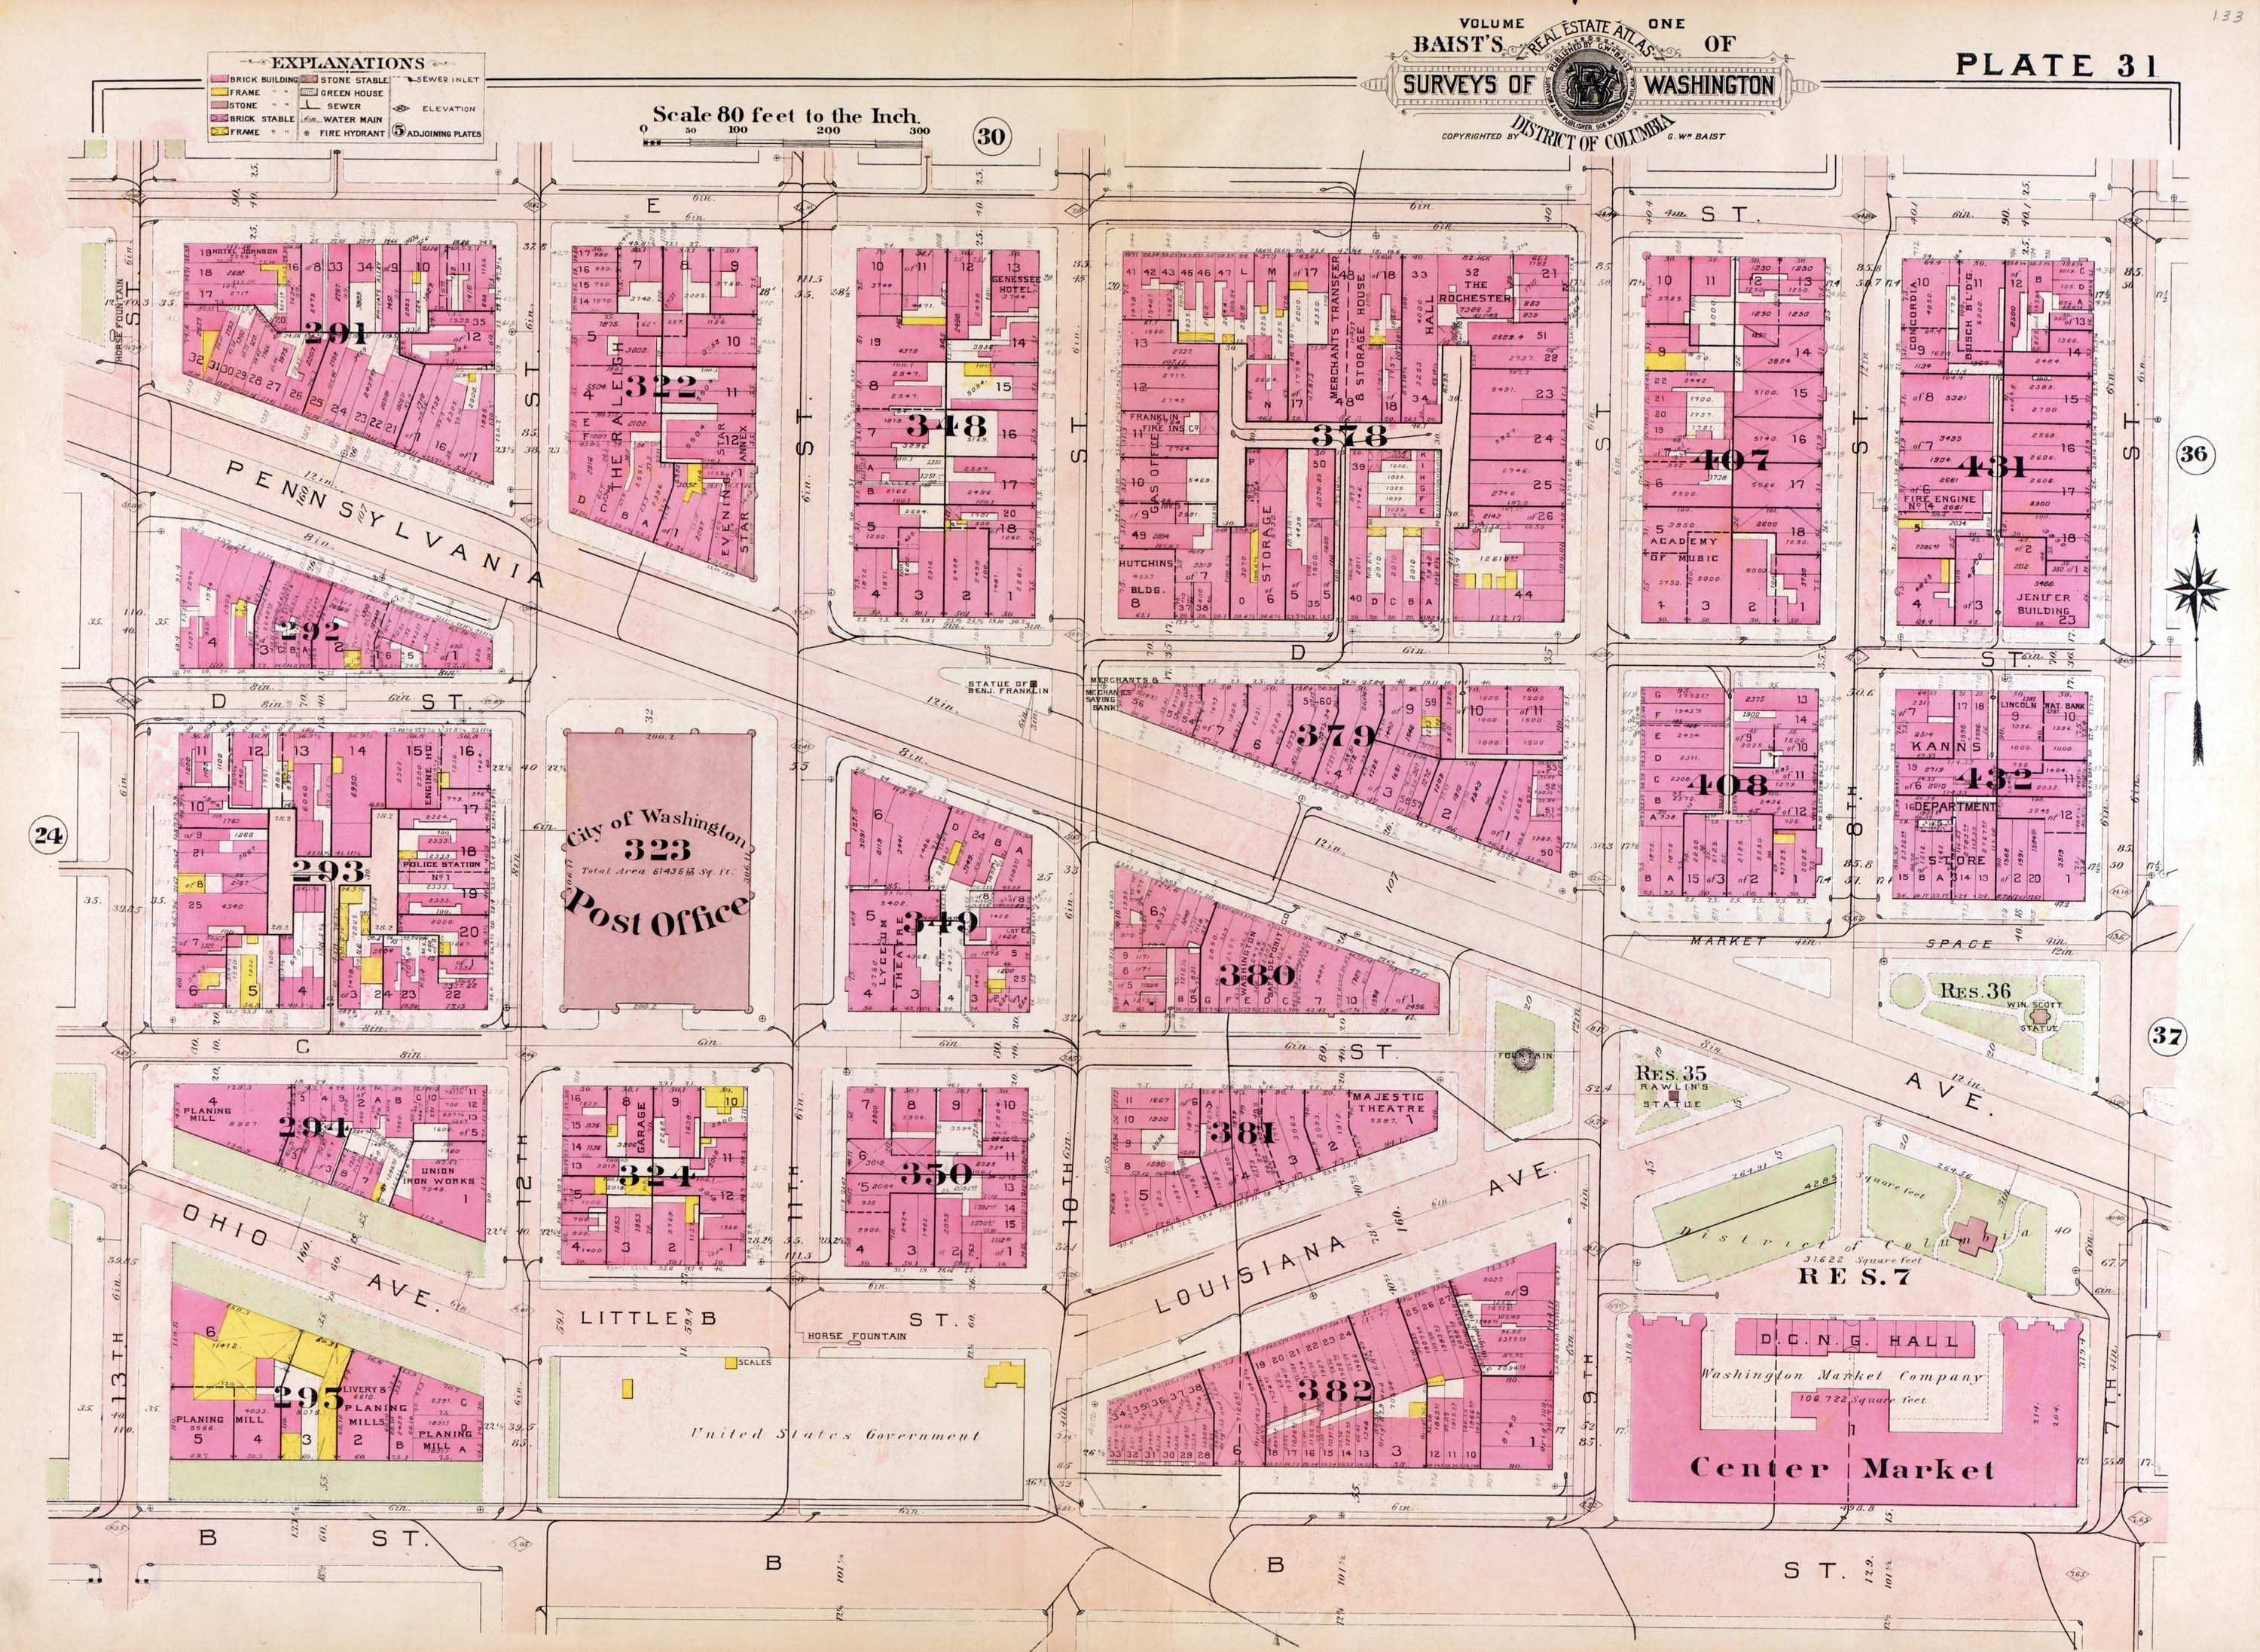 1909 Map of downtown Washington showing original location of Ben